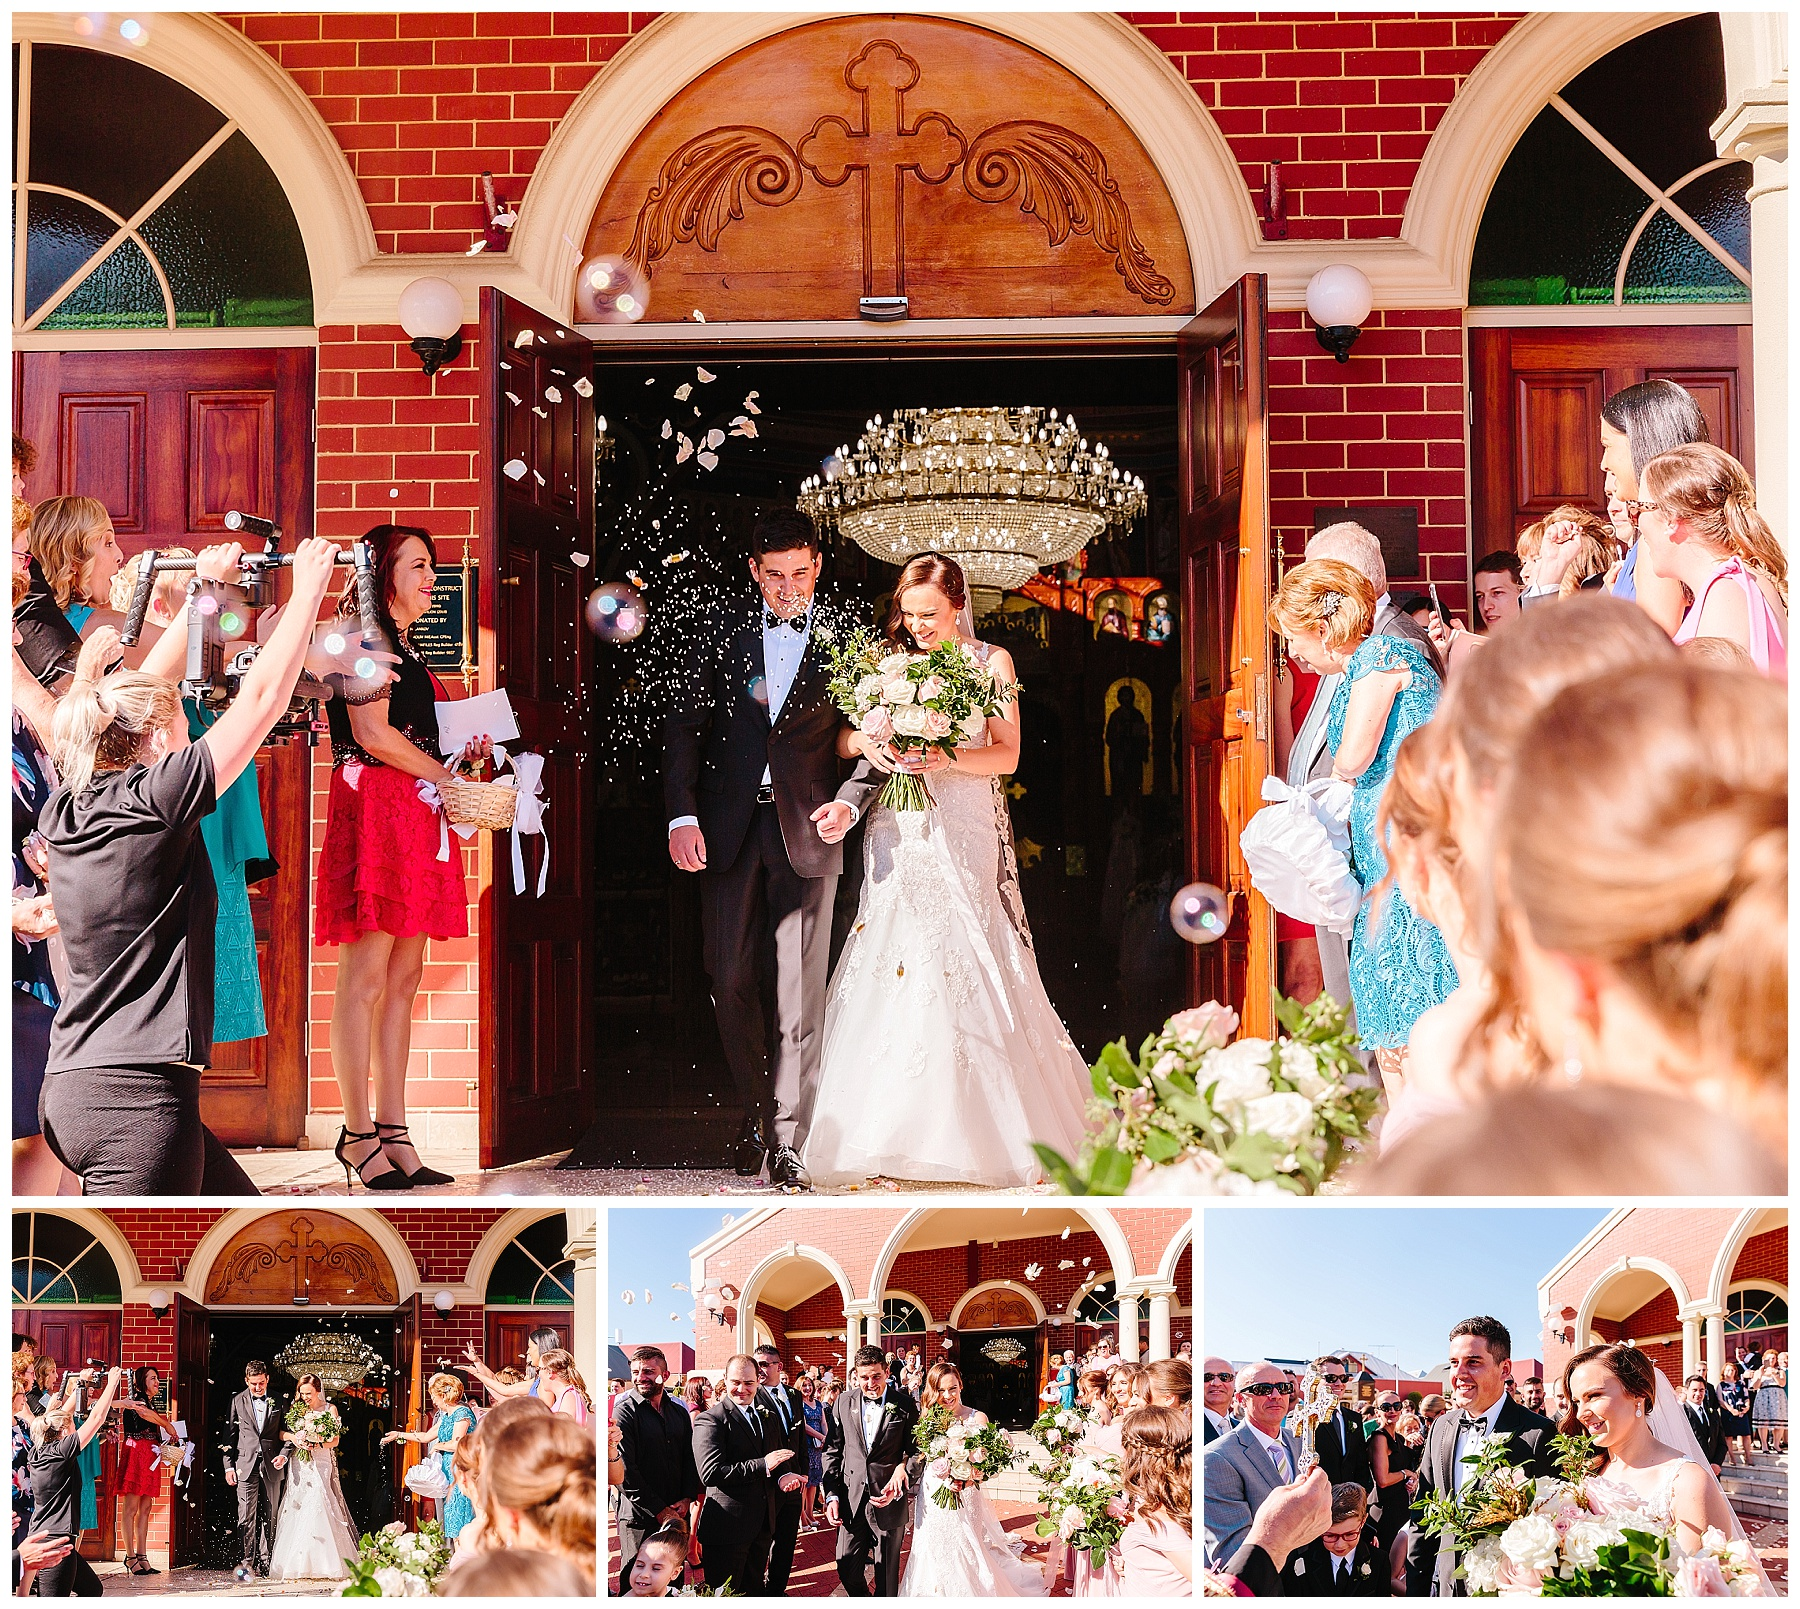 Candid wedding photography Perth